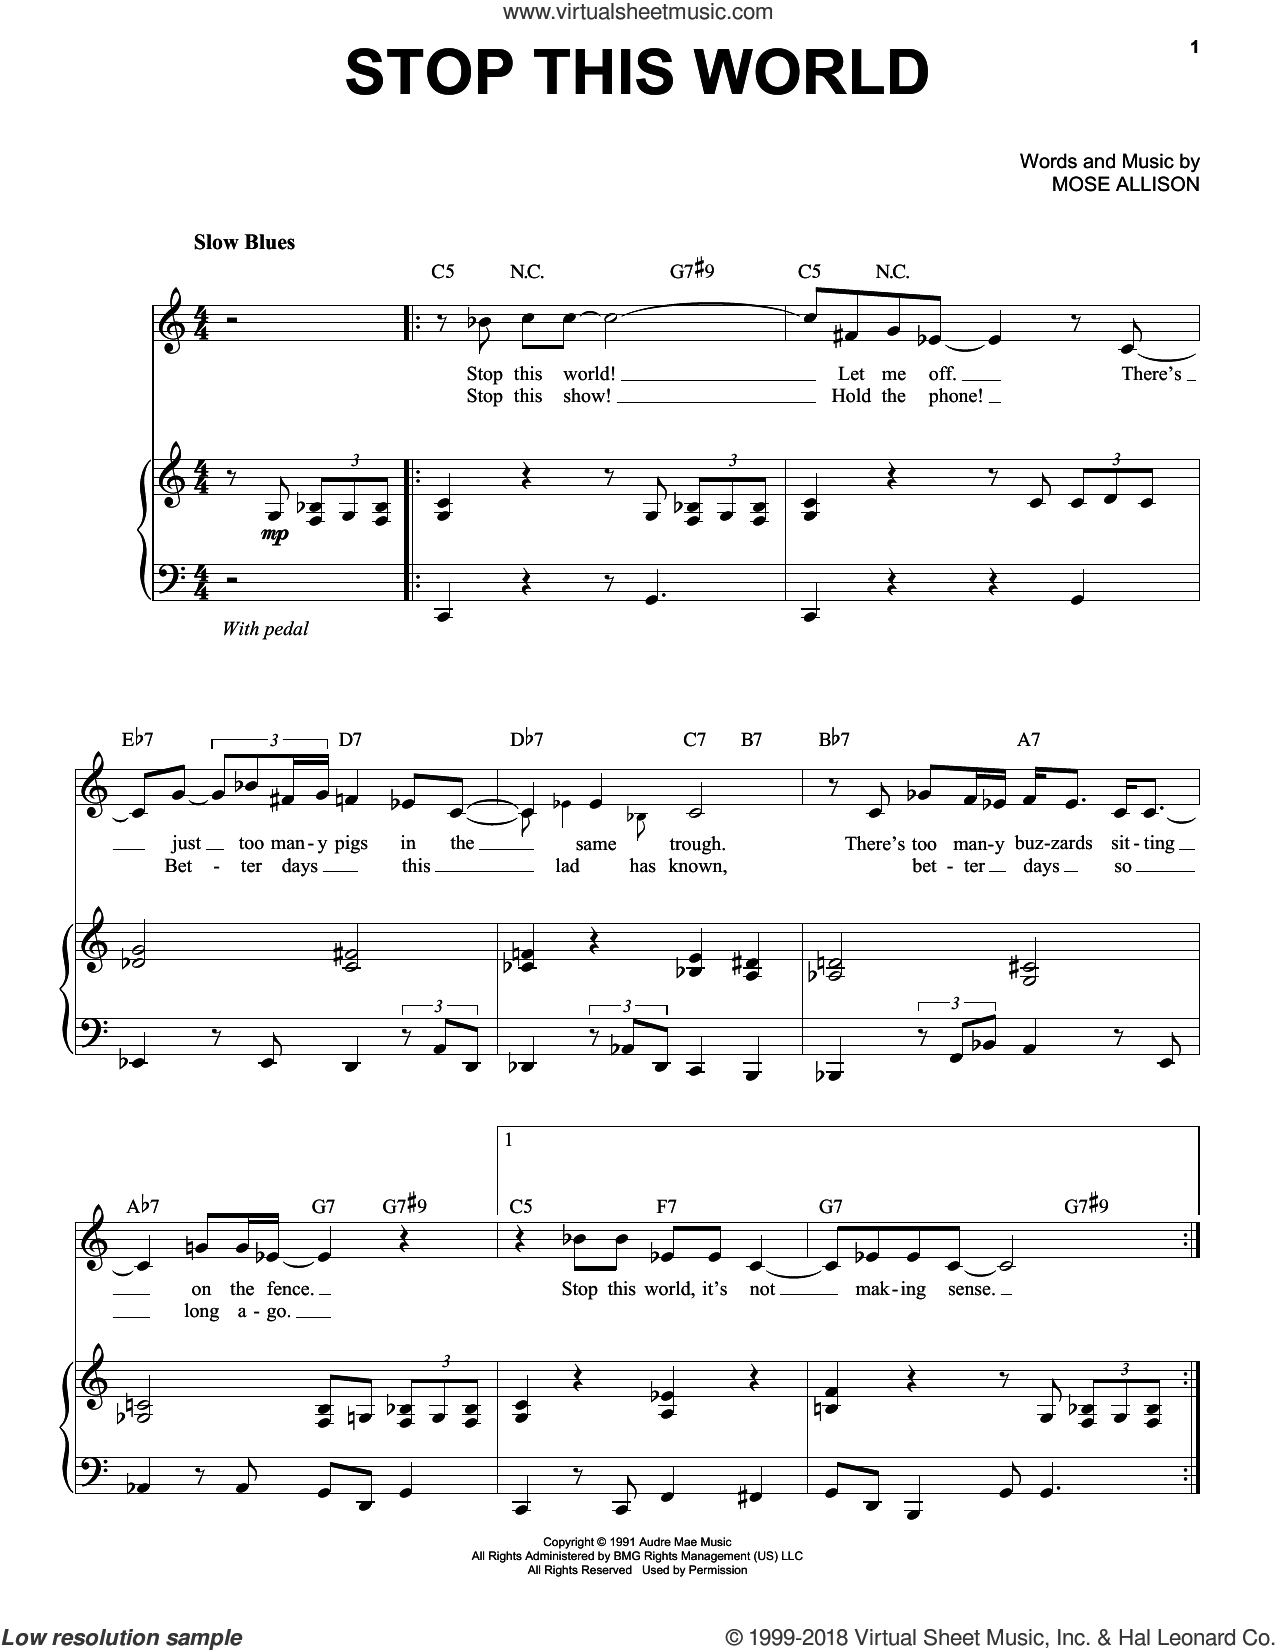 Stop This World sheet music for voice and piano by Mose Allison